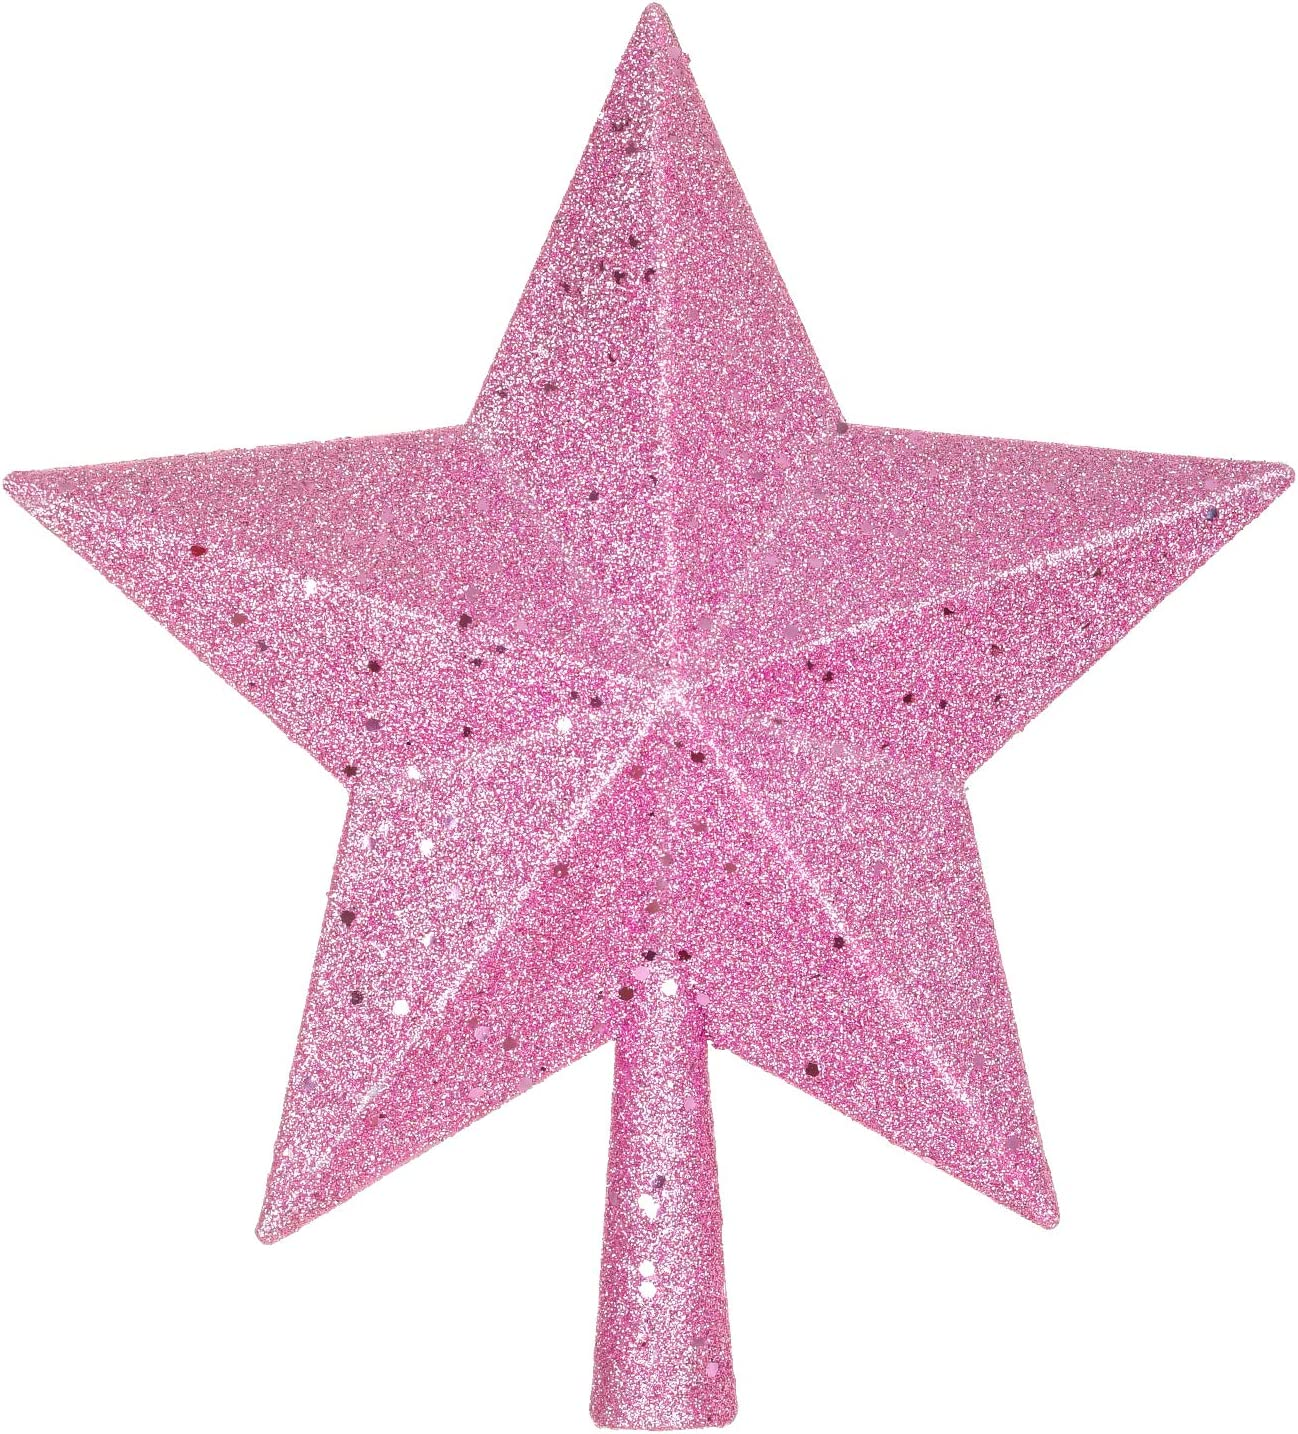 Artiflr 10Inch Christmas Popularity Tree Topper Super Special SALE held Glittered Star